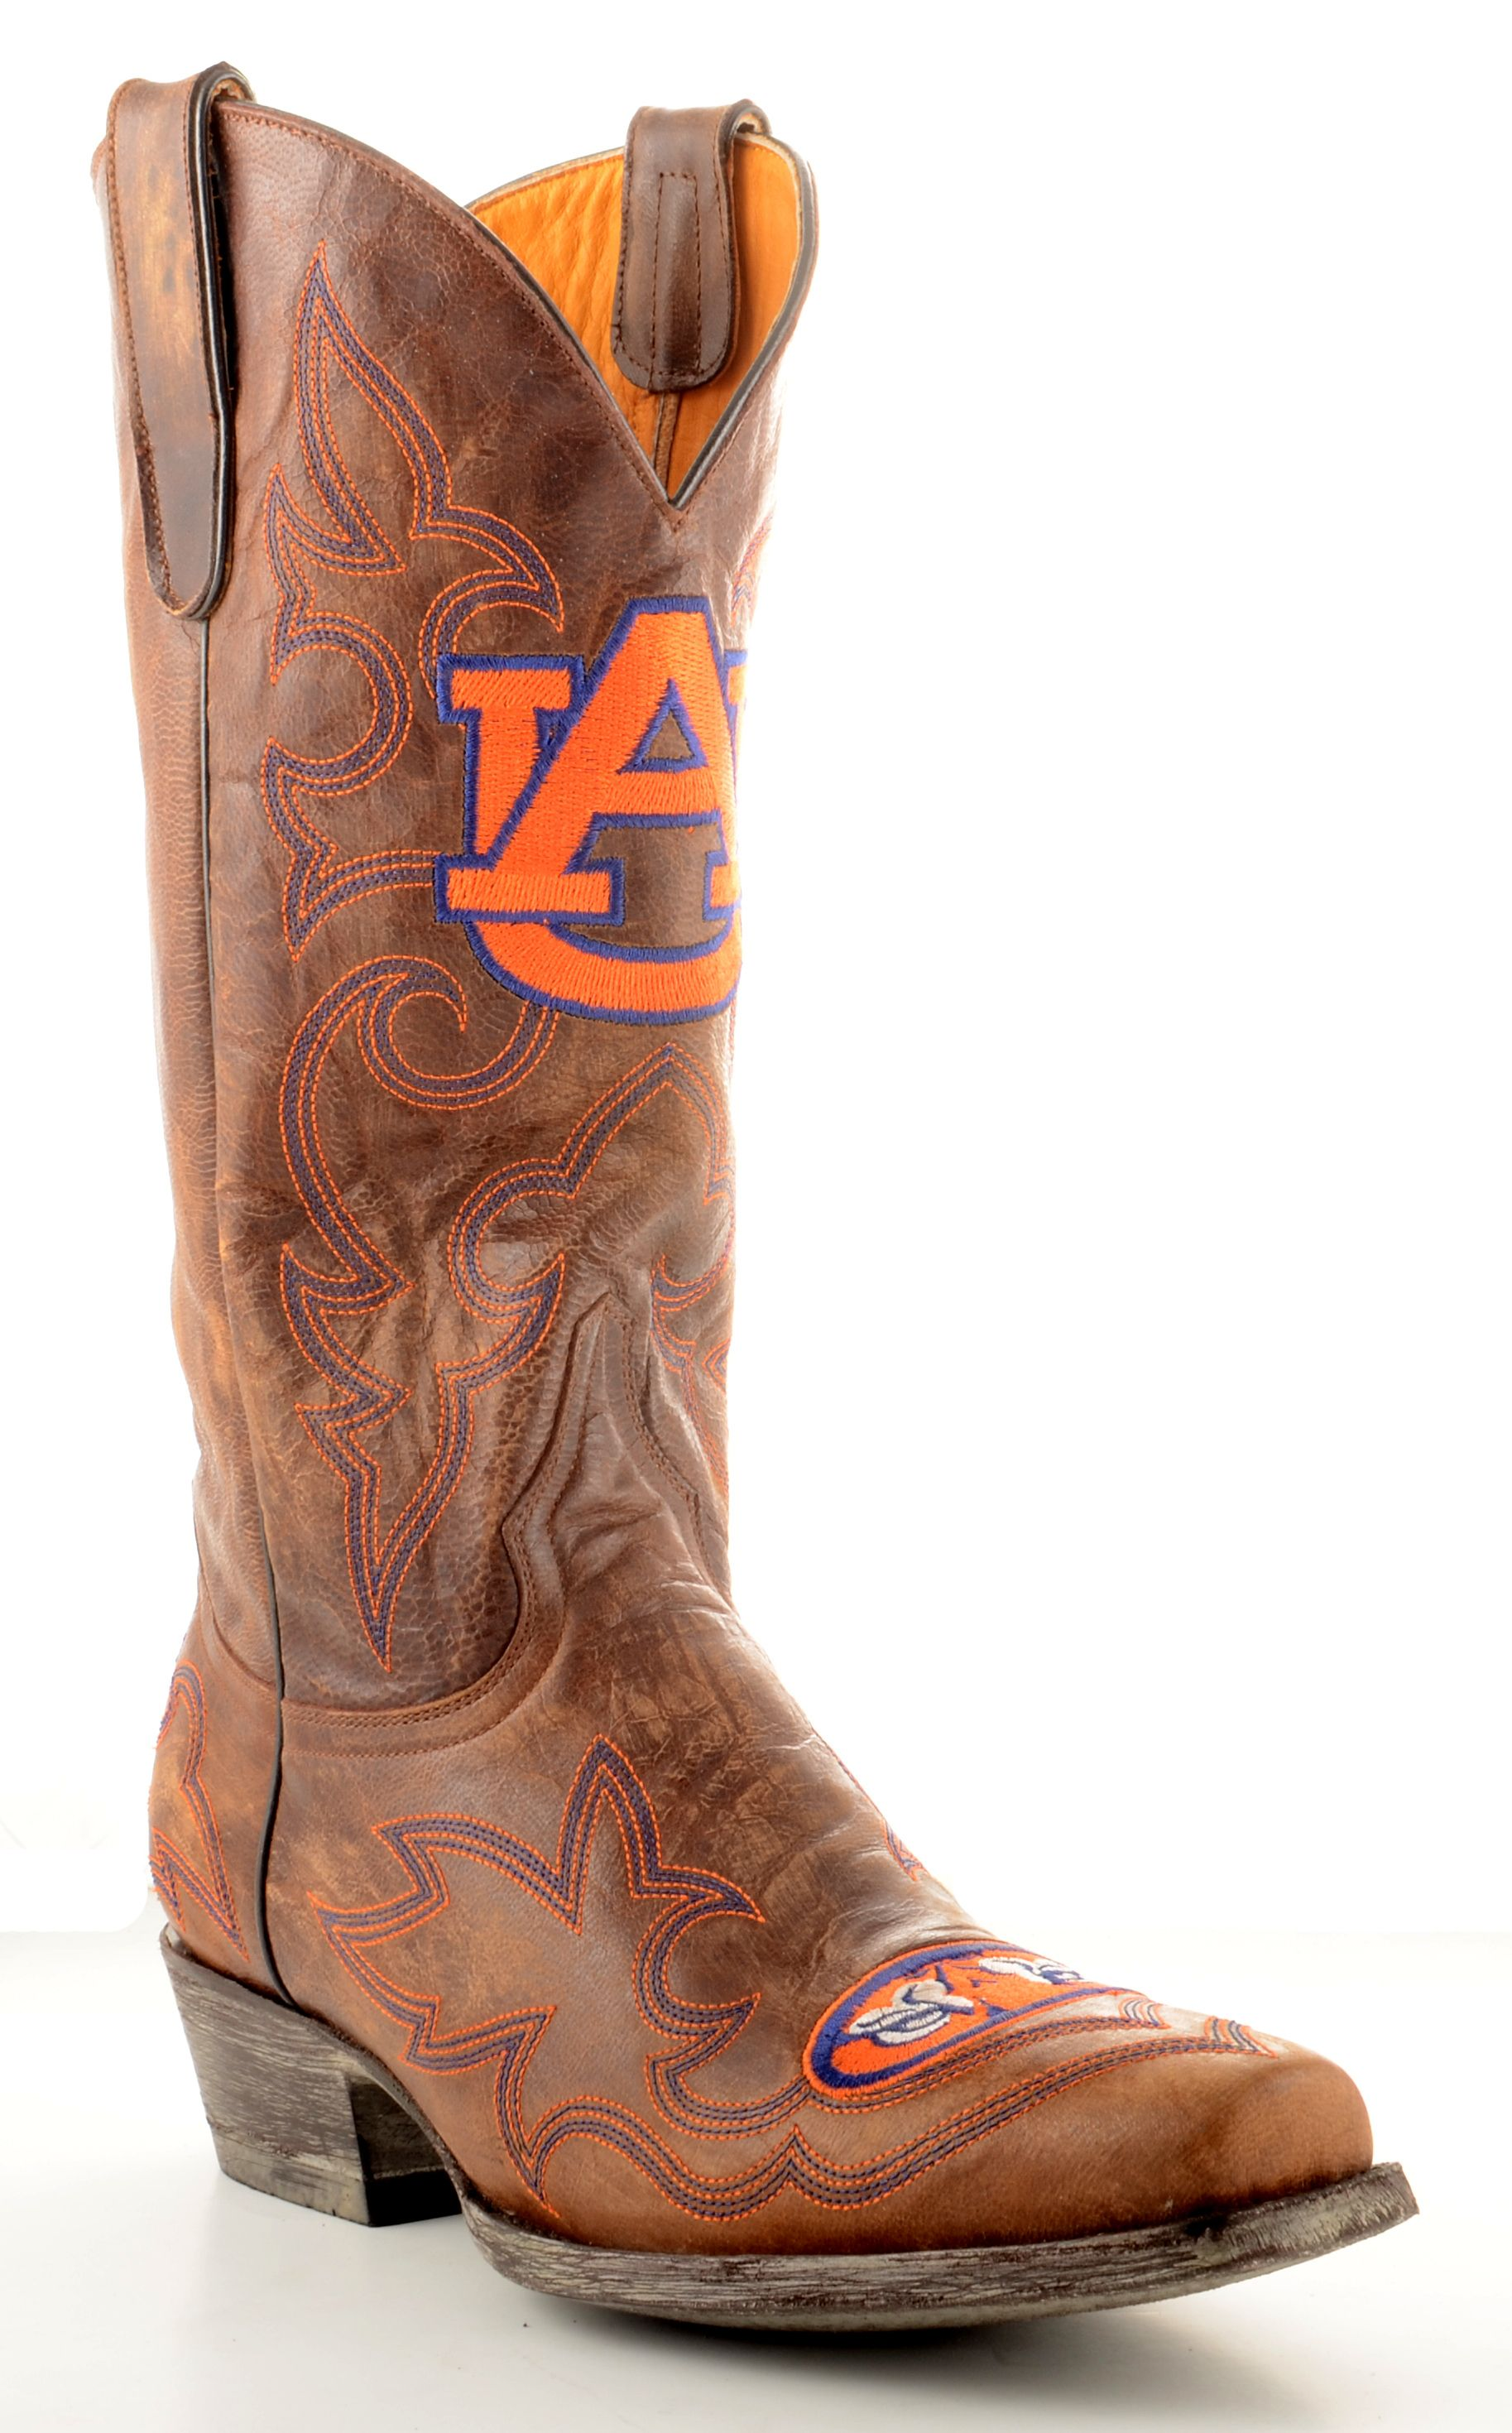 Gameday Boots Mens Gameday Cowboy Western Boot Auburn University Tigers M001_1 Brown at Sears.com